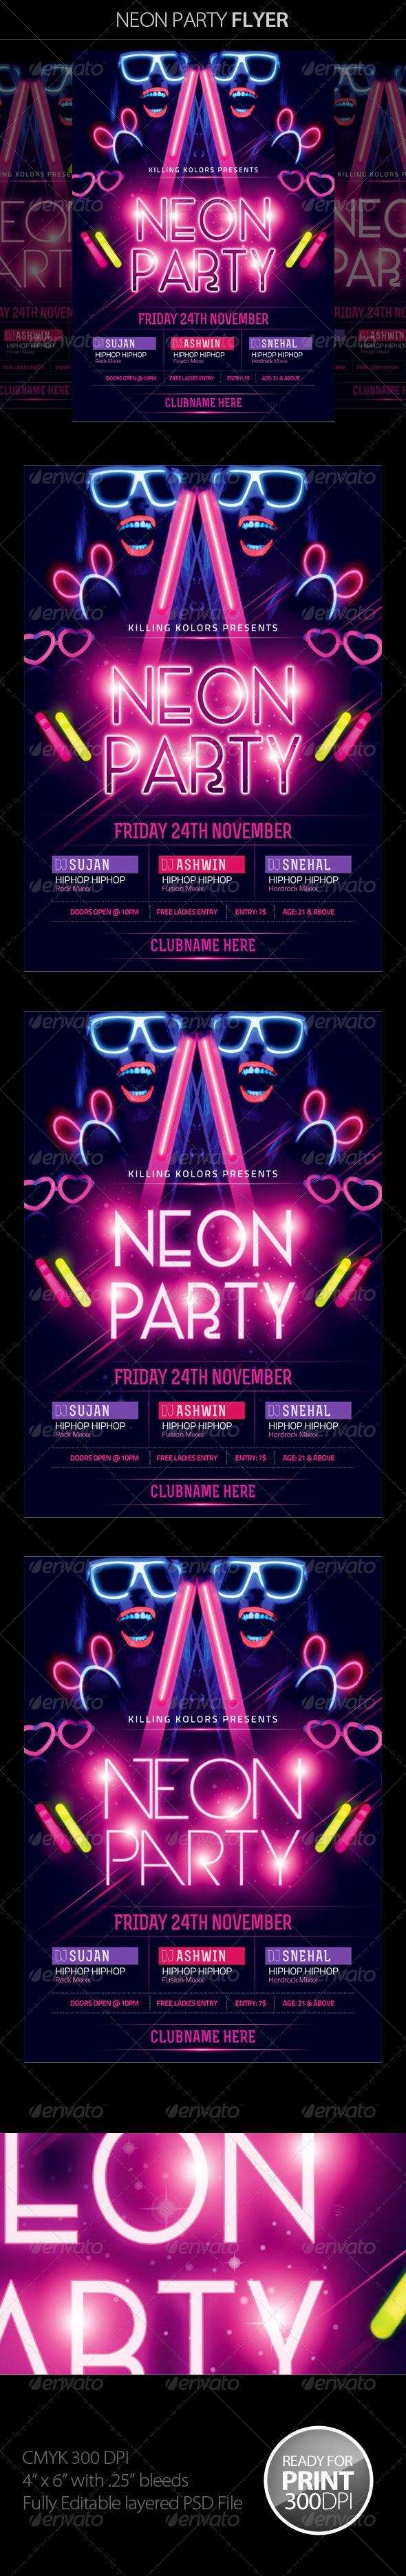 Neon / Glow Party Flyer #party #poster #print • Available here → http://graphicriver.net/item/neon-glow-party-flyer/8620238?s_rank=143&ref=pxcr